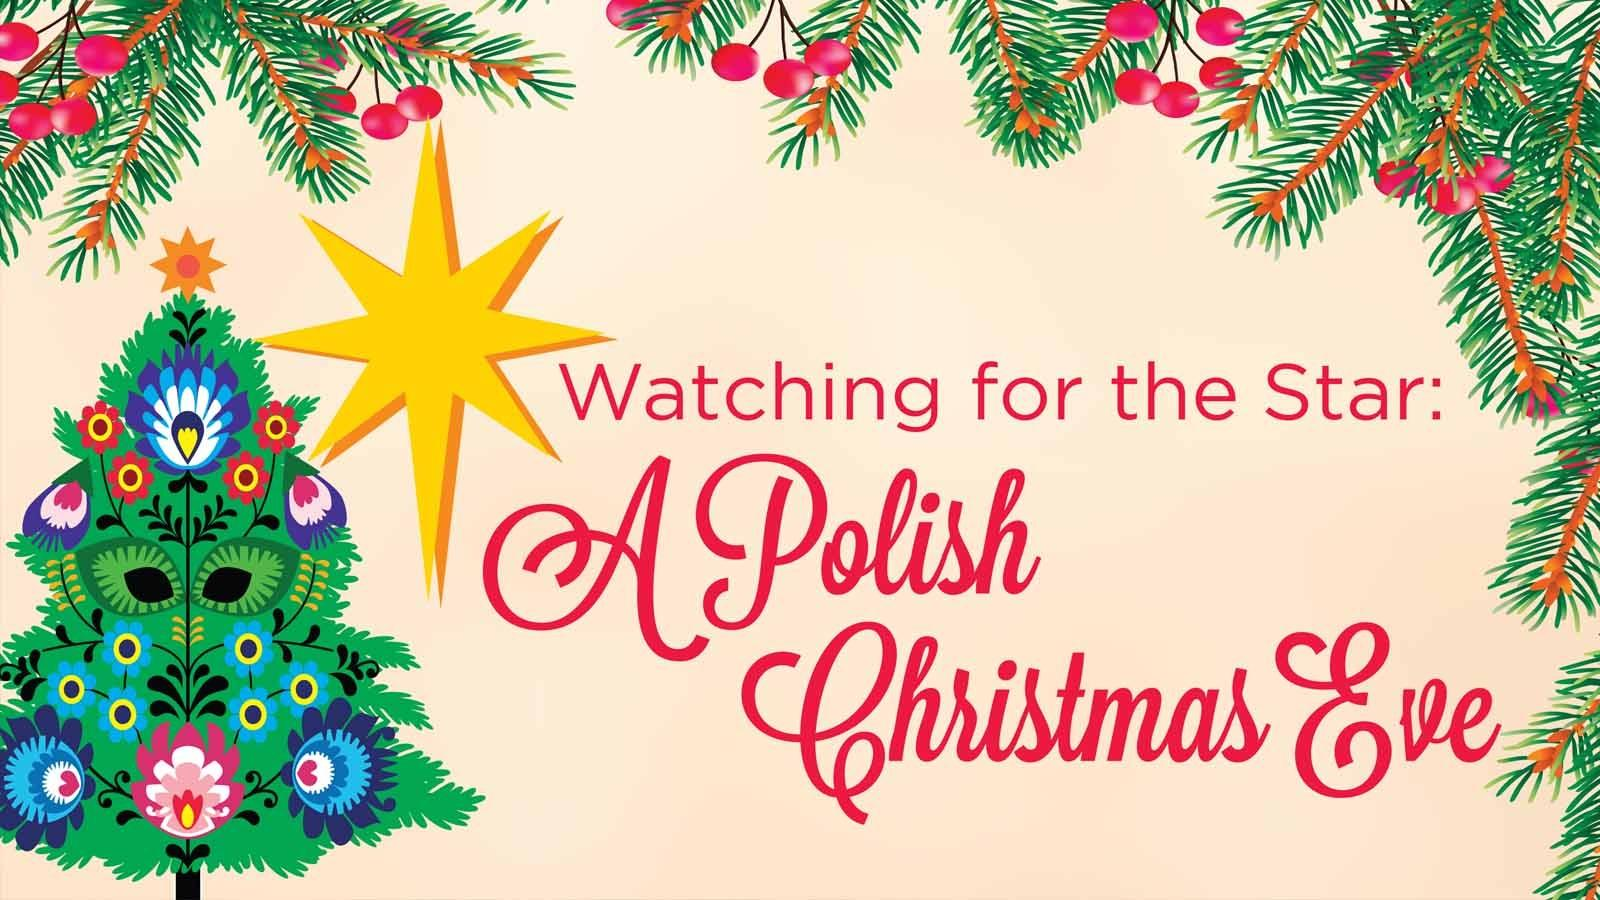 Watching for the Star: A Polish Christmas Eve